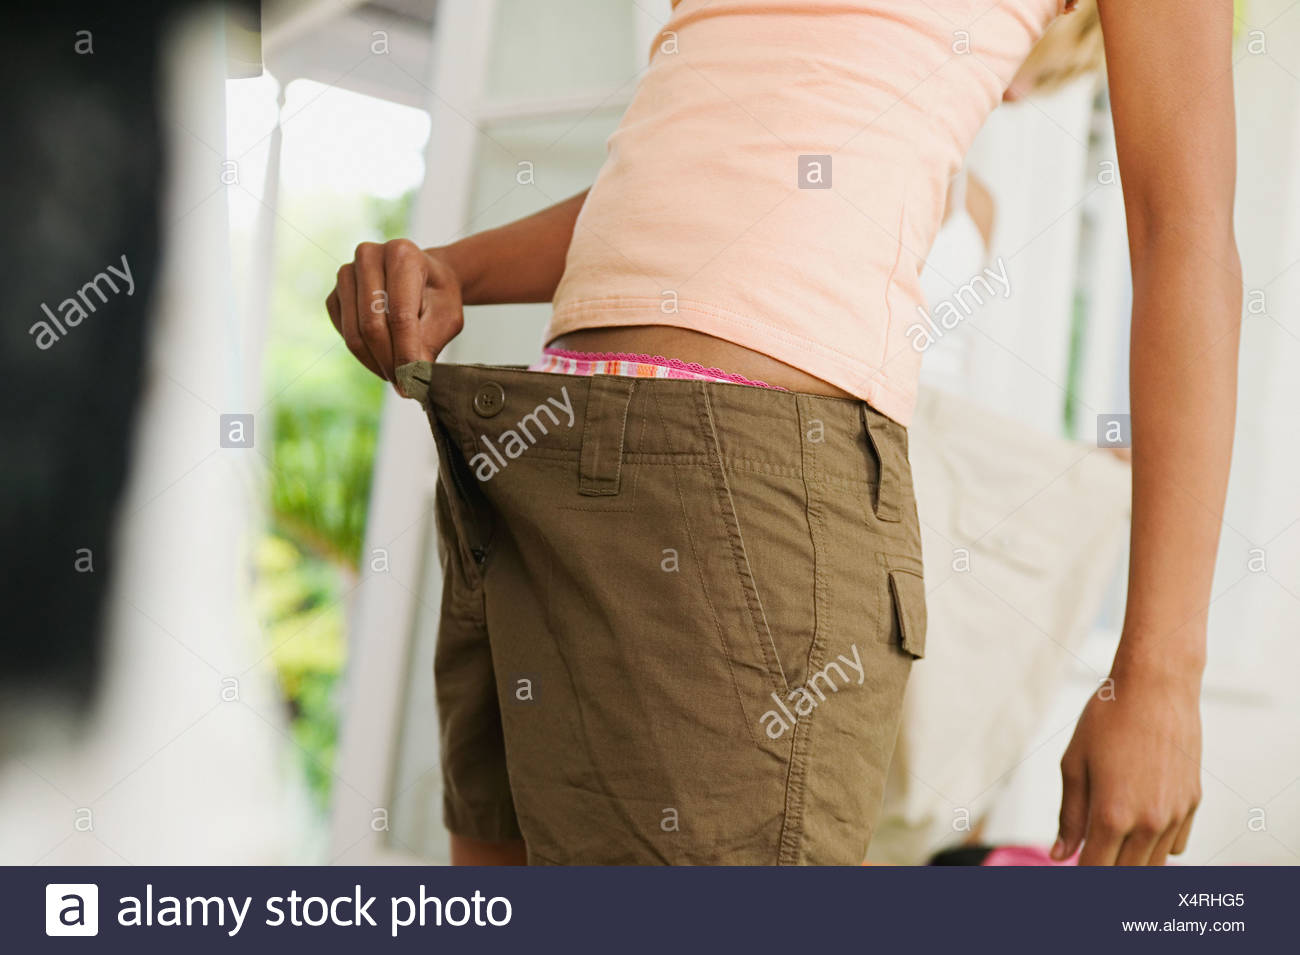 Woman wearing too large trousers - Stock Image